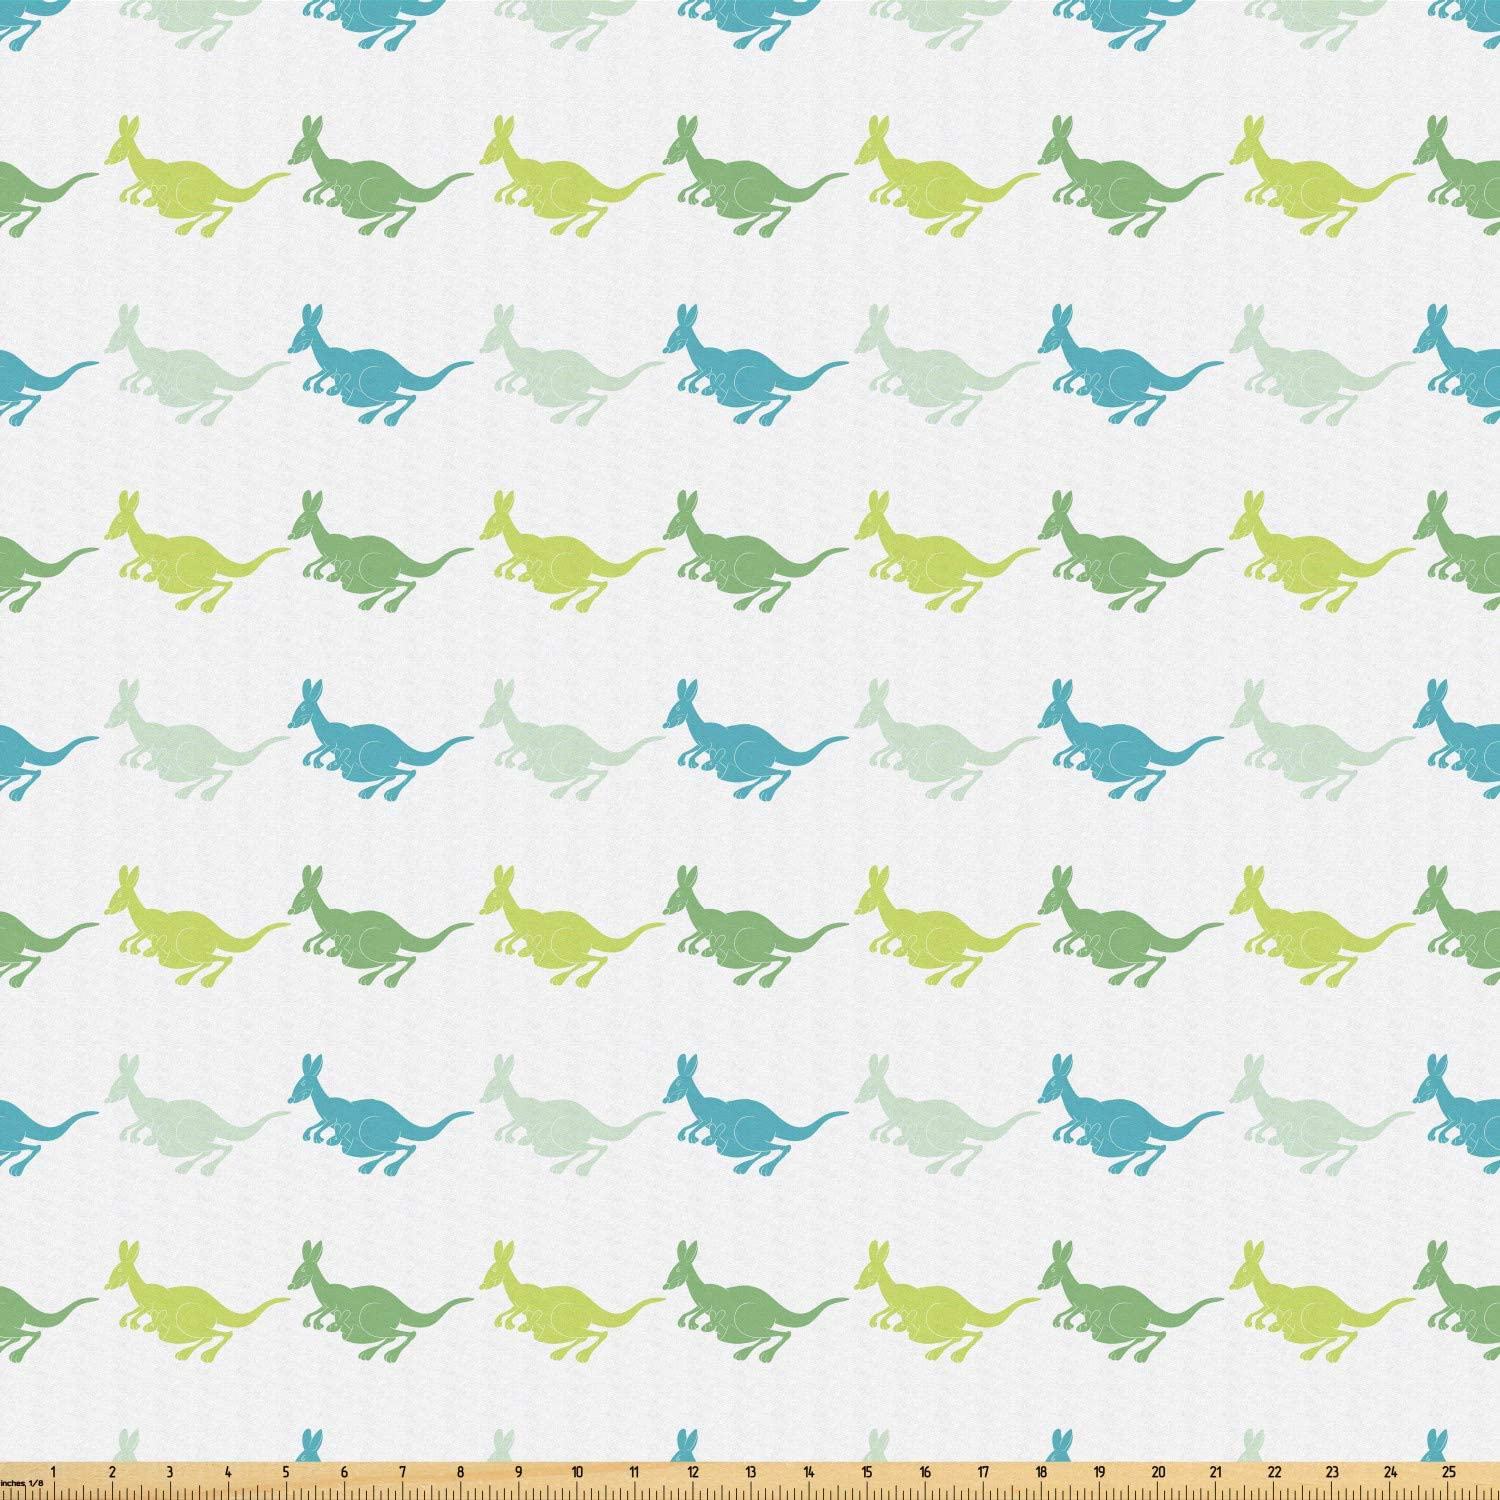 Ambesonne Kangaroo Fabric by The Yard, Group of Cheerful Kangaroos Jumping Together and Carrying Babies in The Pouch, Microfiber Fabric for Arts and Crafts Textiles & Decor, 1 Yard, Multicolor